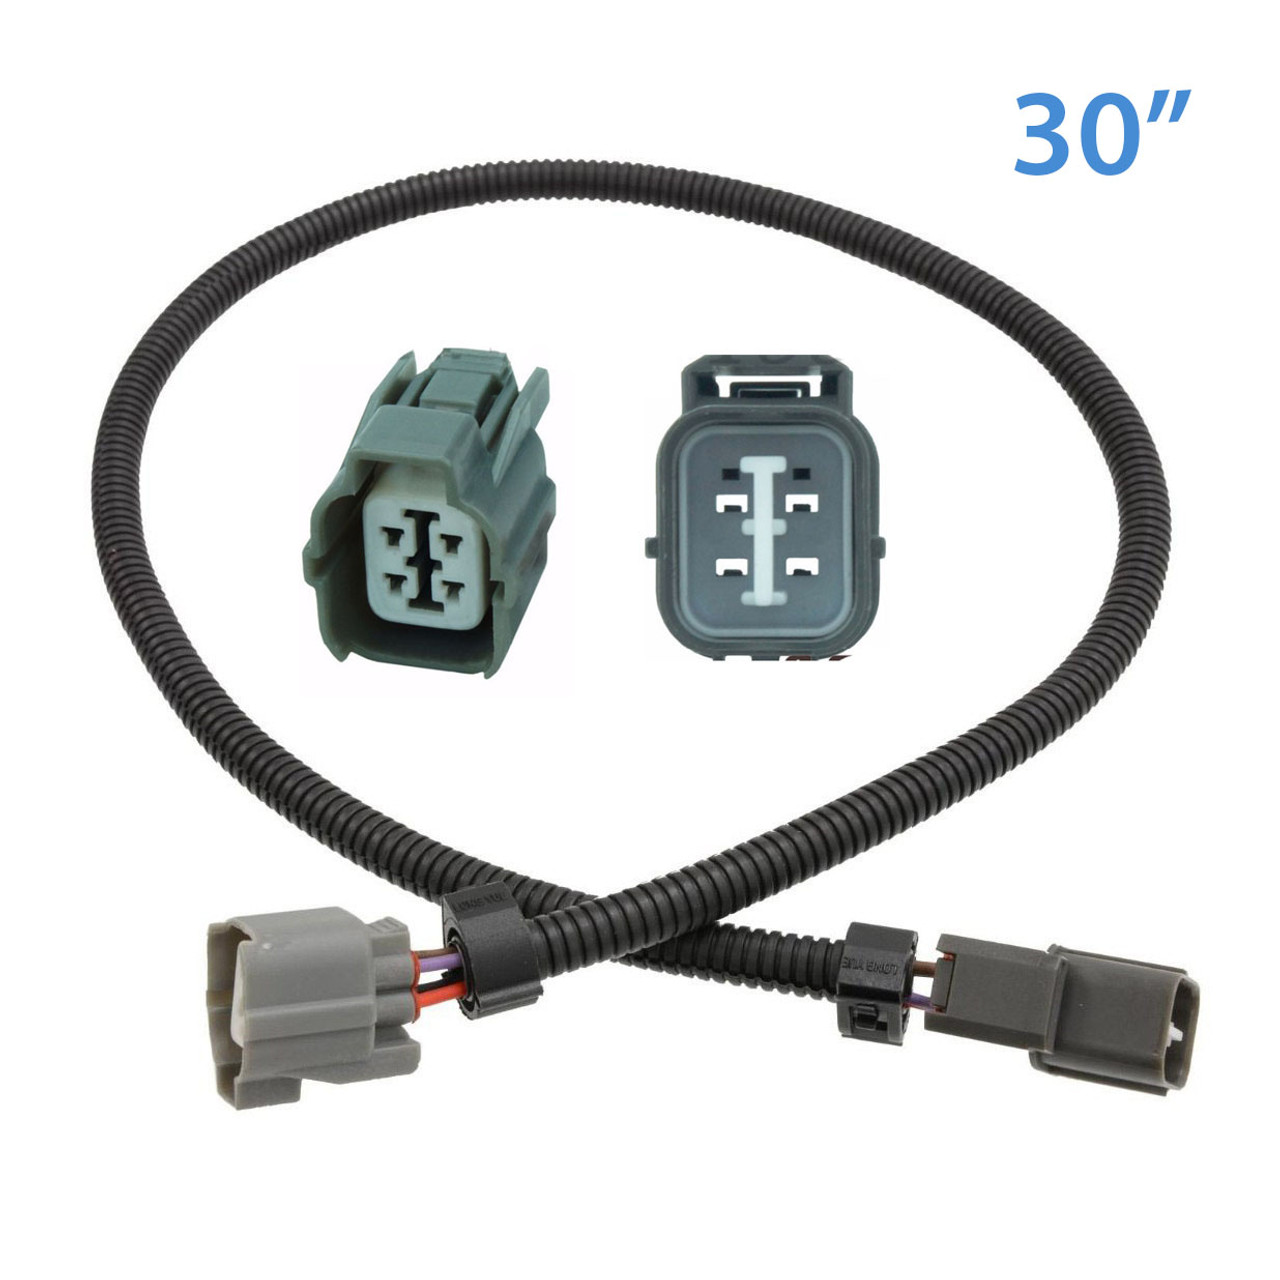 hight resolution of 4 wire o2 sensor extension cable honda civic integra 30 obd gt wiring harness gt toyota tail light connector harness extension